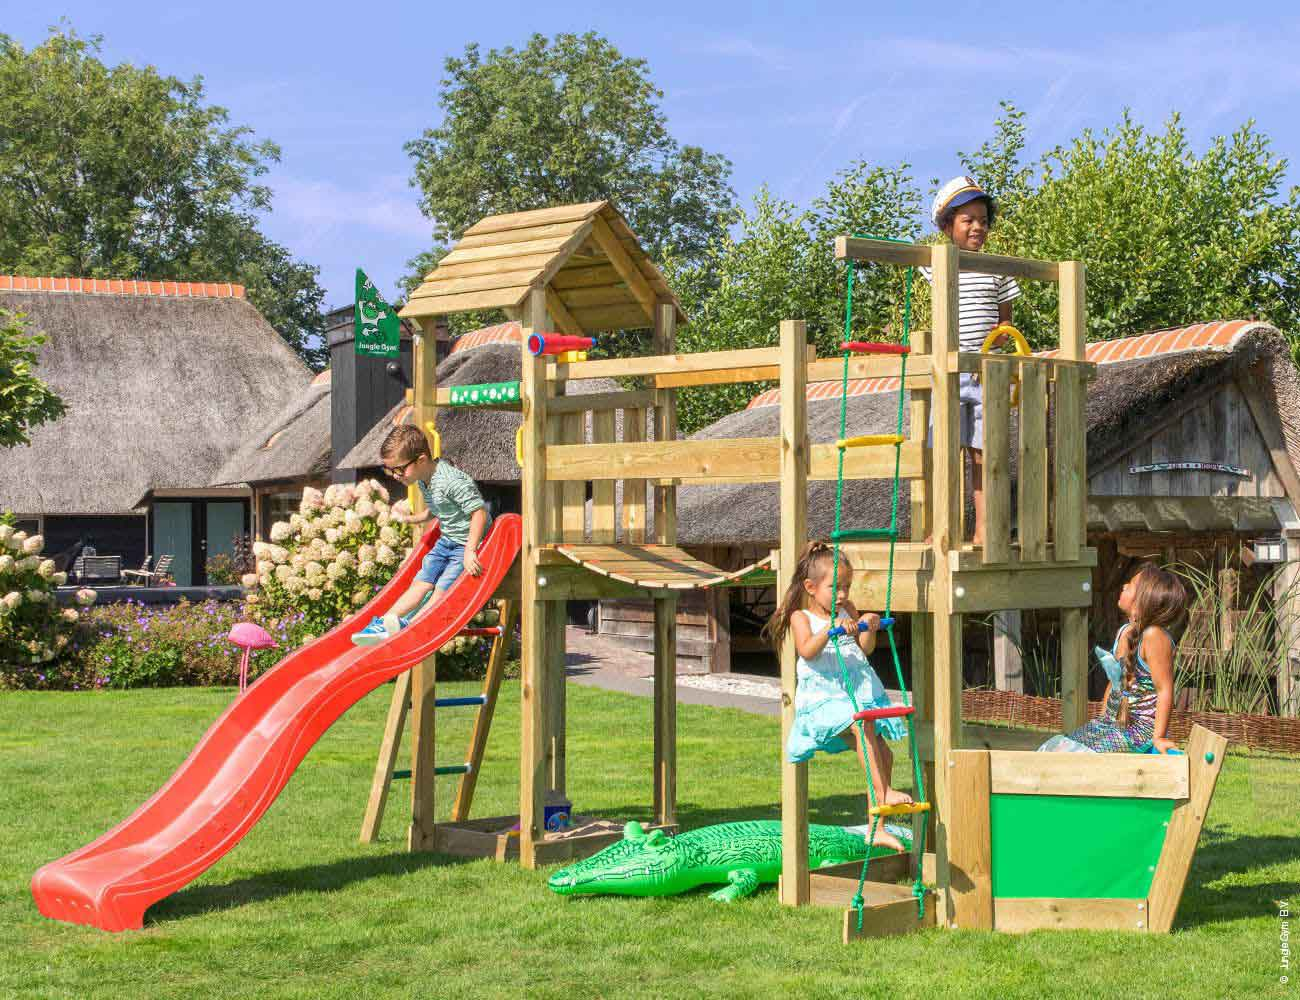 Torretta gioco Voyager  con scivolo_mybricoshop-jungle-gym_product